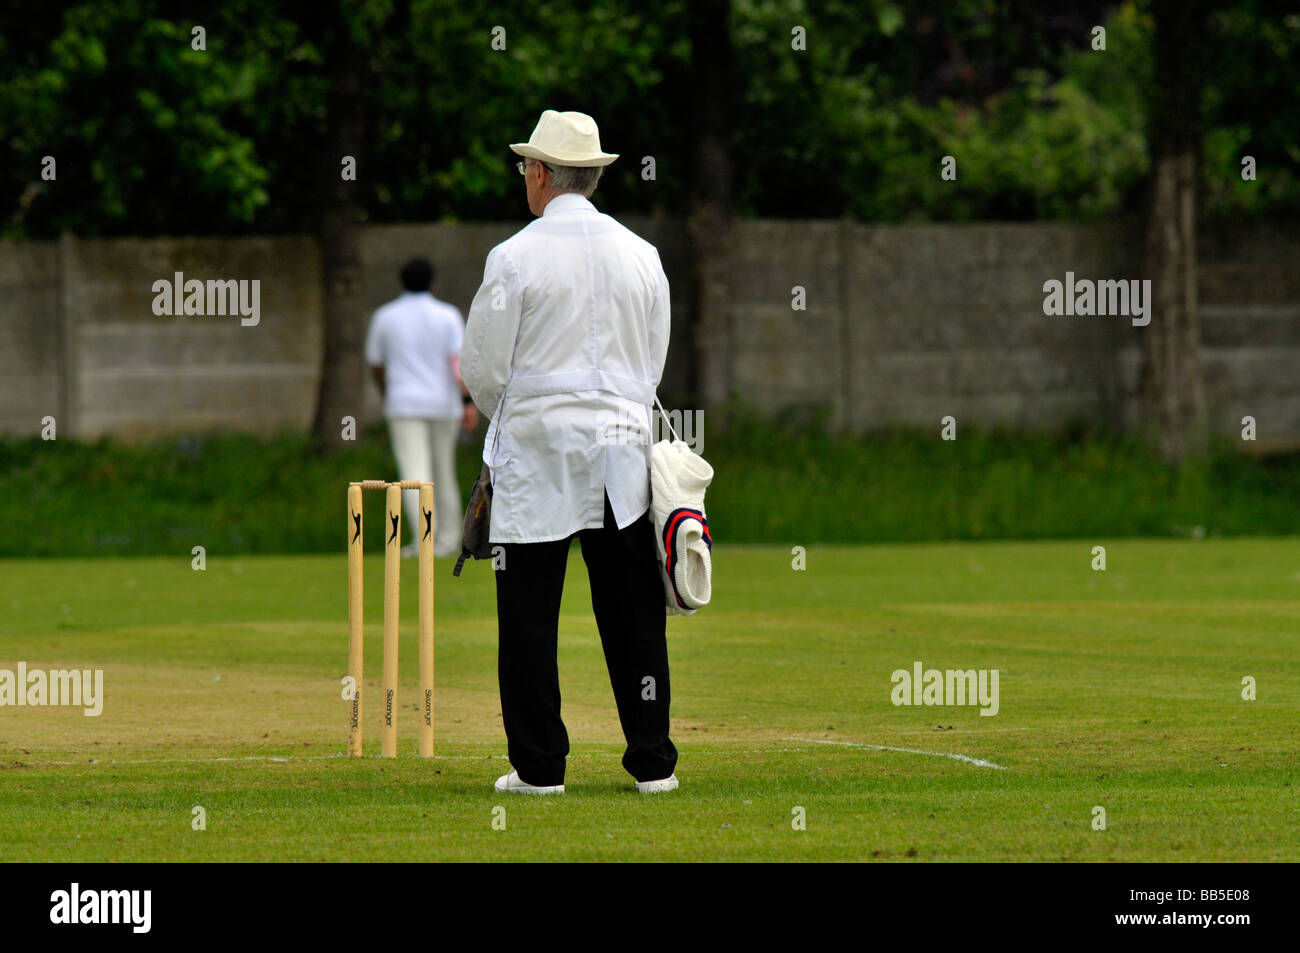 umpire waiting at end of an over - Stock Image